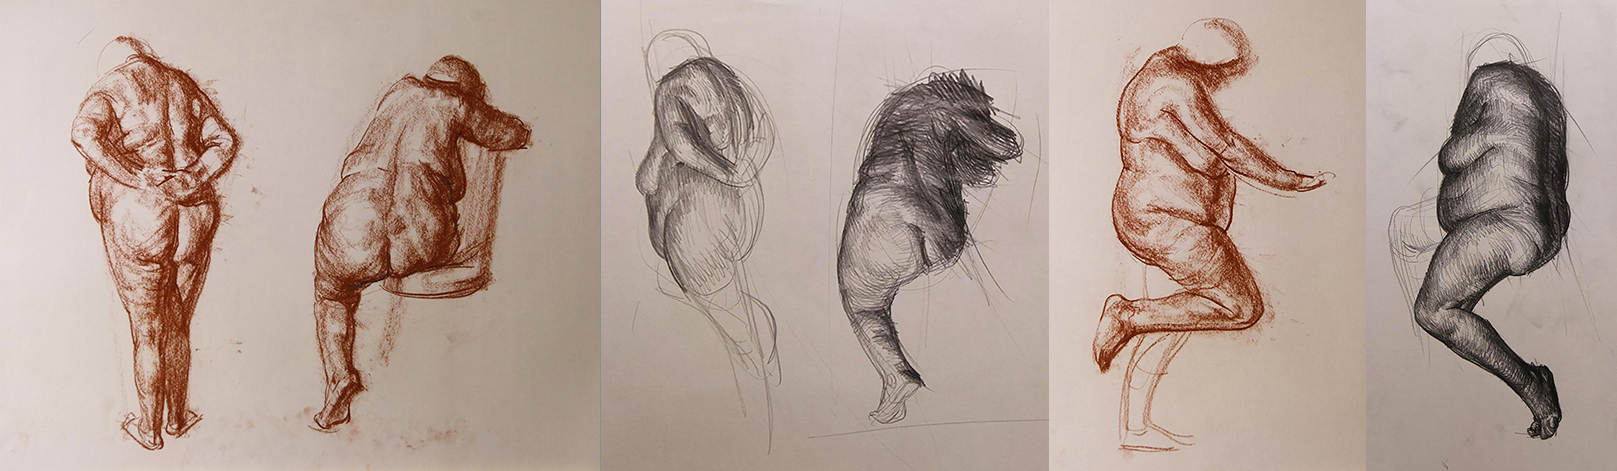 Studies from life model for the floating figure- giving myself options to choose from later on